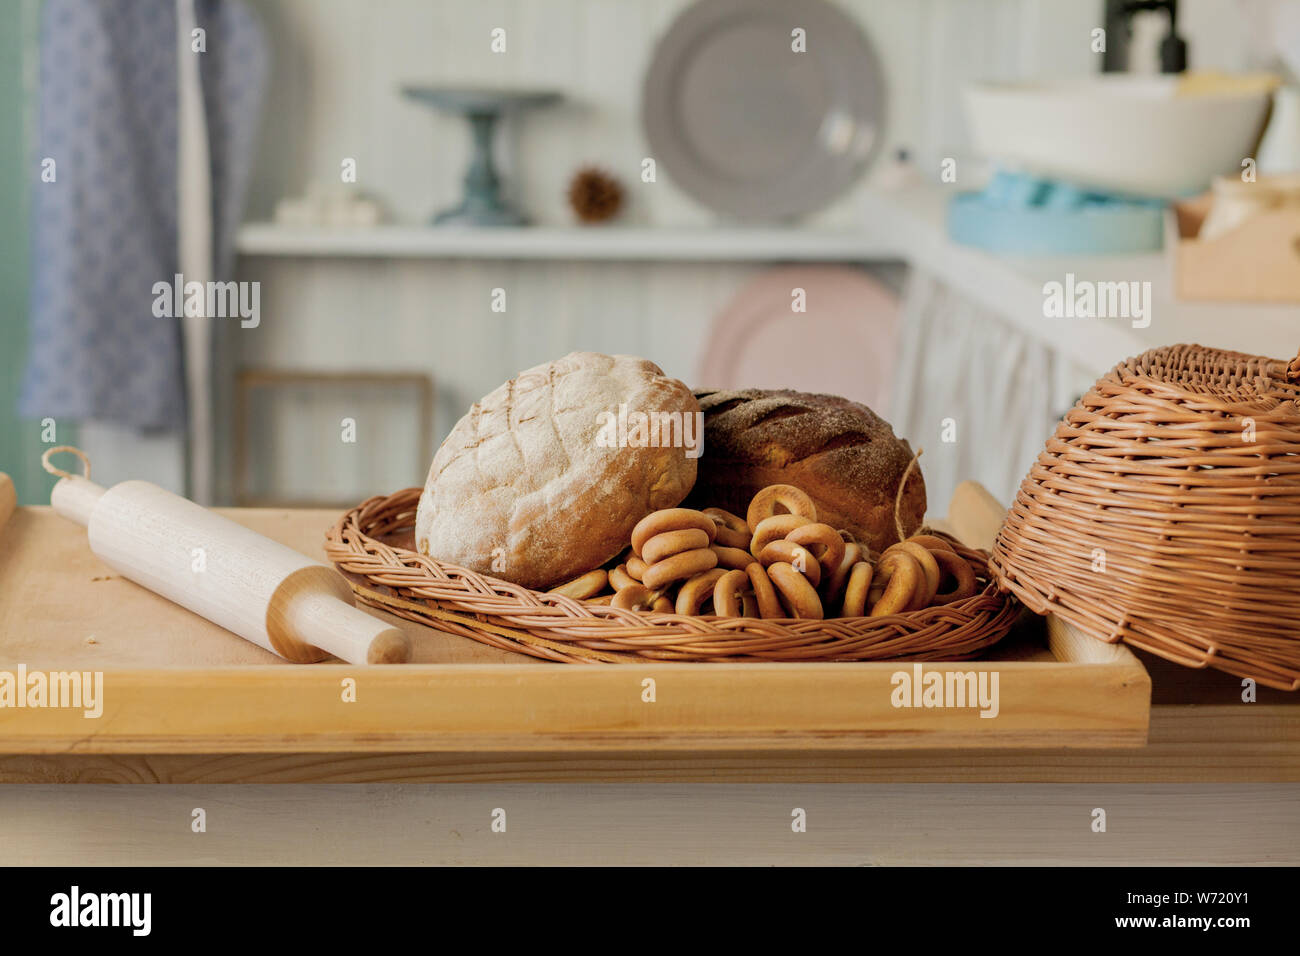 Assortment of breads near a wicker basket on a table in a rustic kitchen. Composition in kitchen at the photo studio. Stock Photo